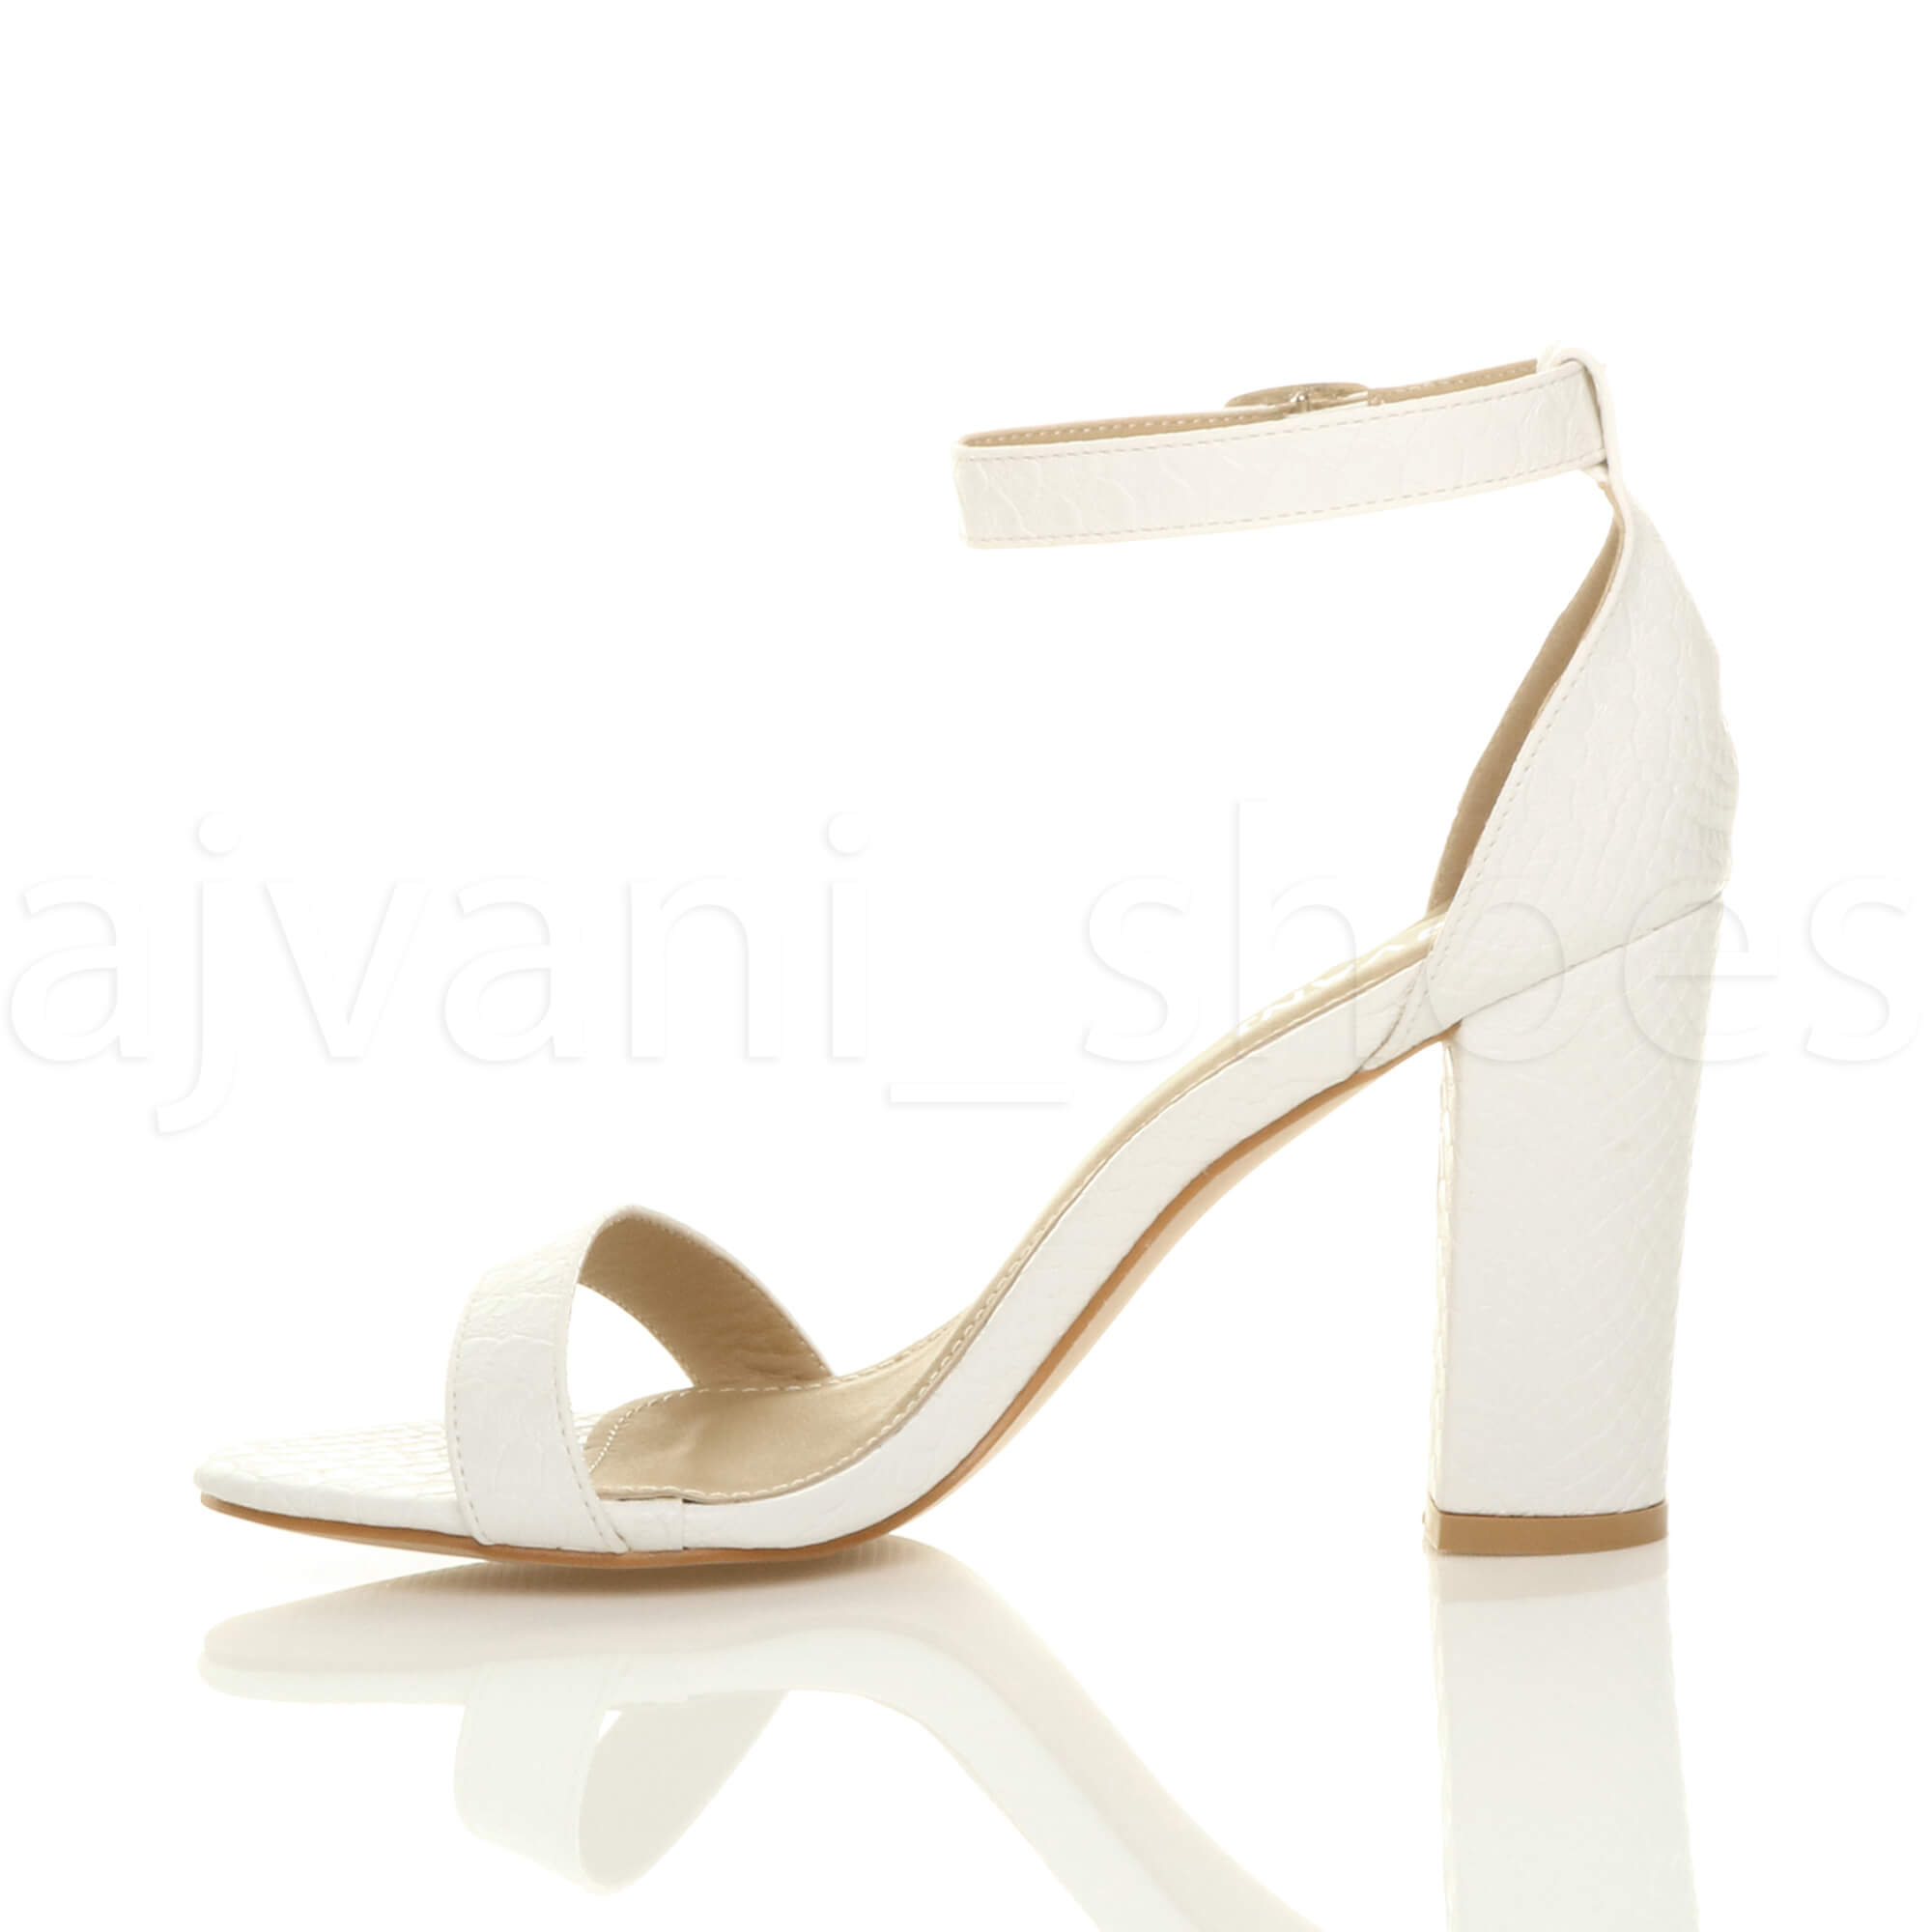 WOMENS-LADIES-BLOCK-HIGH-HEEL-ANKLE-STRAP-PEEP-TOE-STRAPPY-SANDALS-SHOES-SIZE thumbnail 176